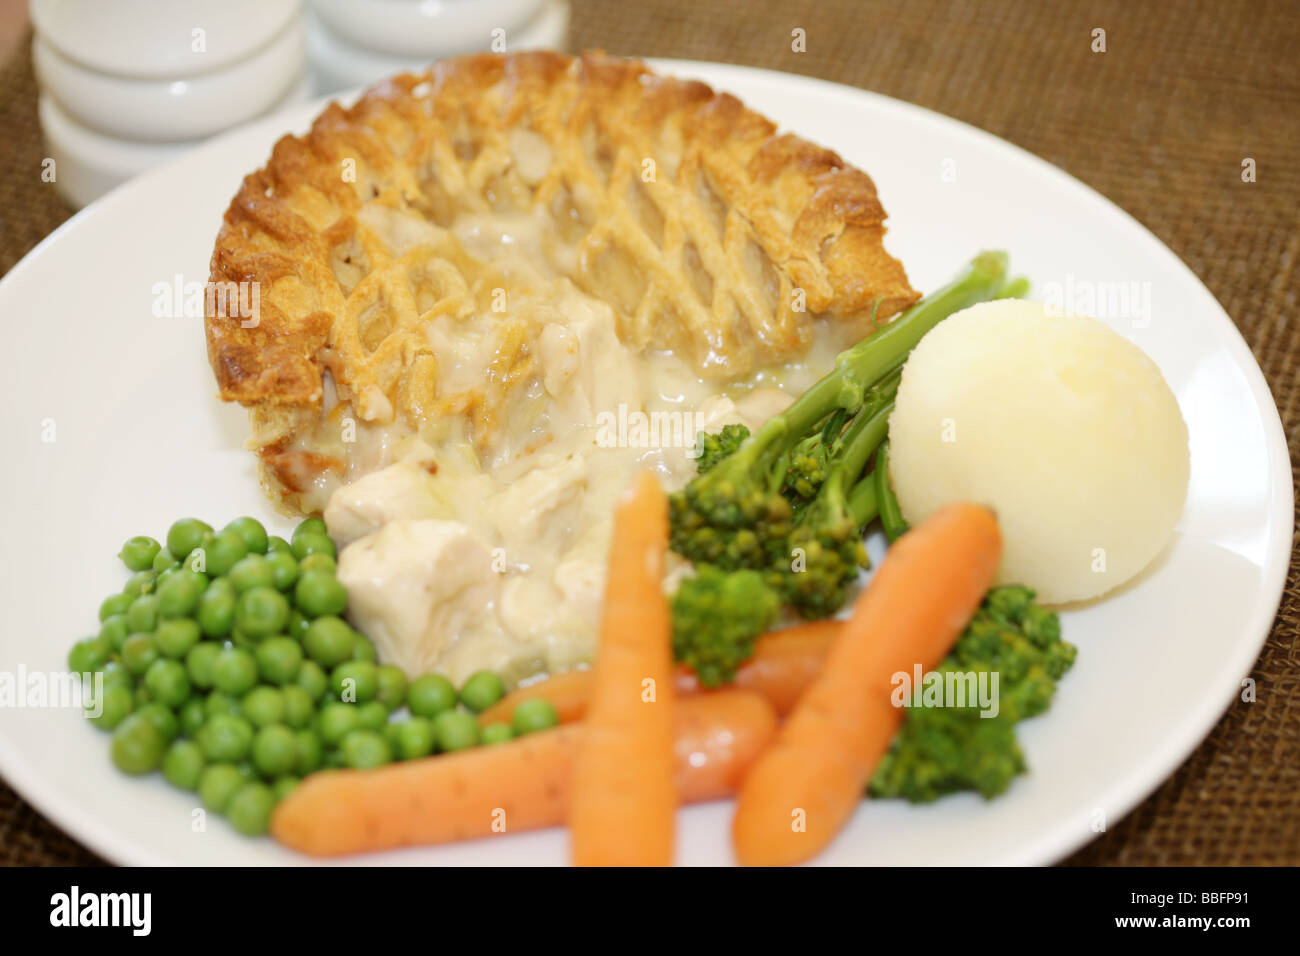 Fish pie with vegetables stock photo royalty free image for What vegetables go with fish